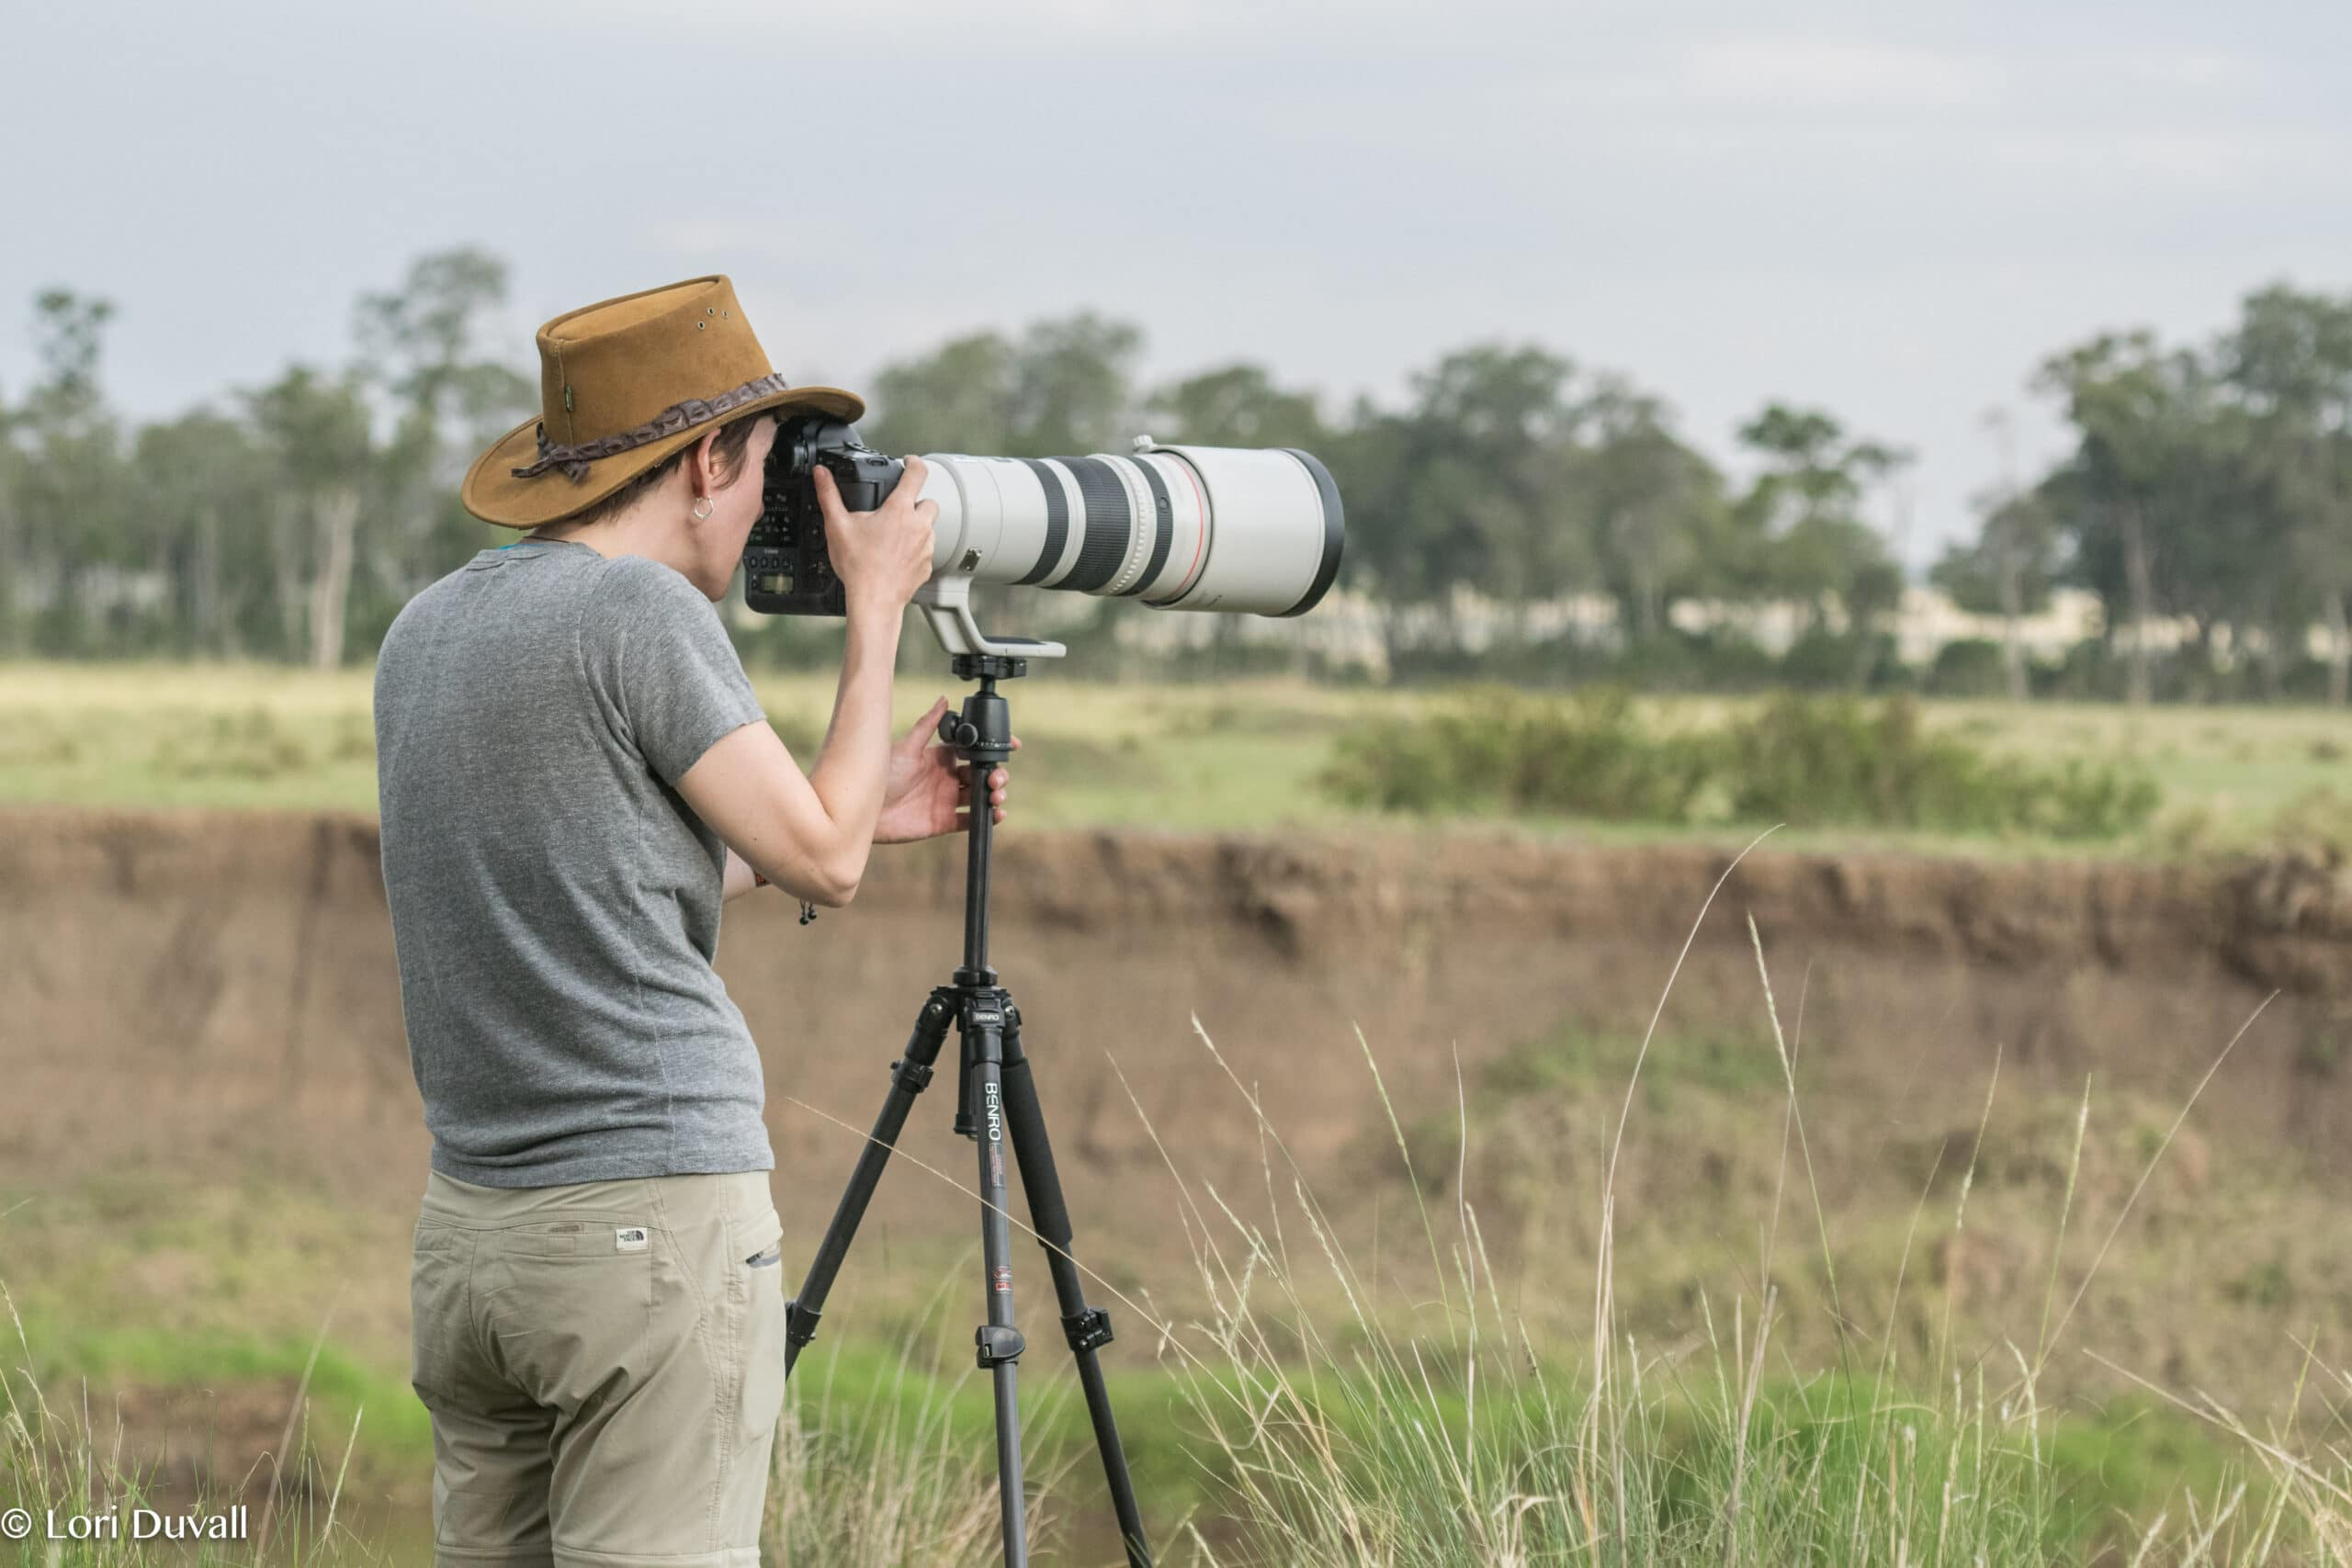 Susan Portnoy photographing in Africa